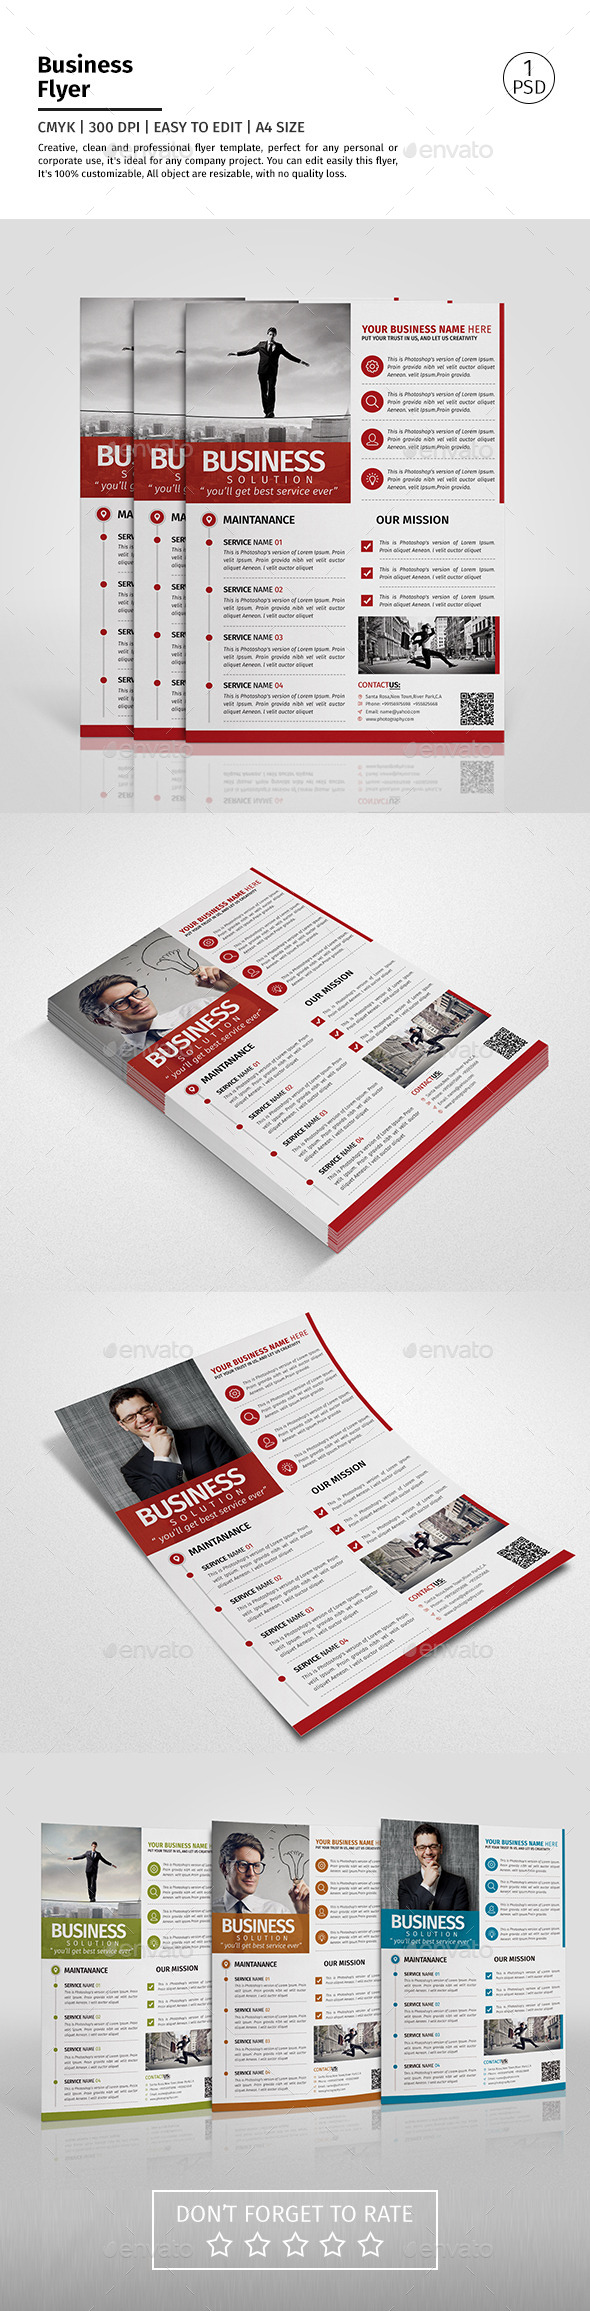 A4 Corporate Business Flyer Template Vol 04 - Corporate Flyers